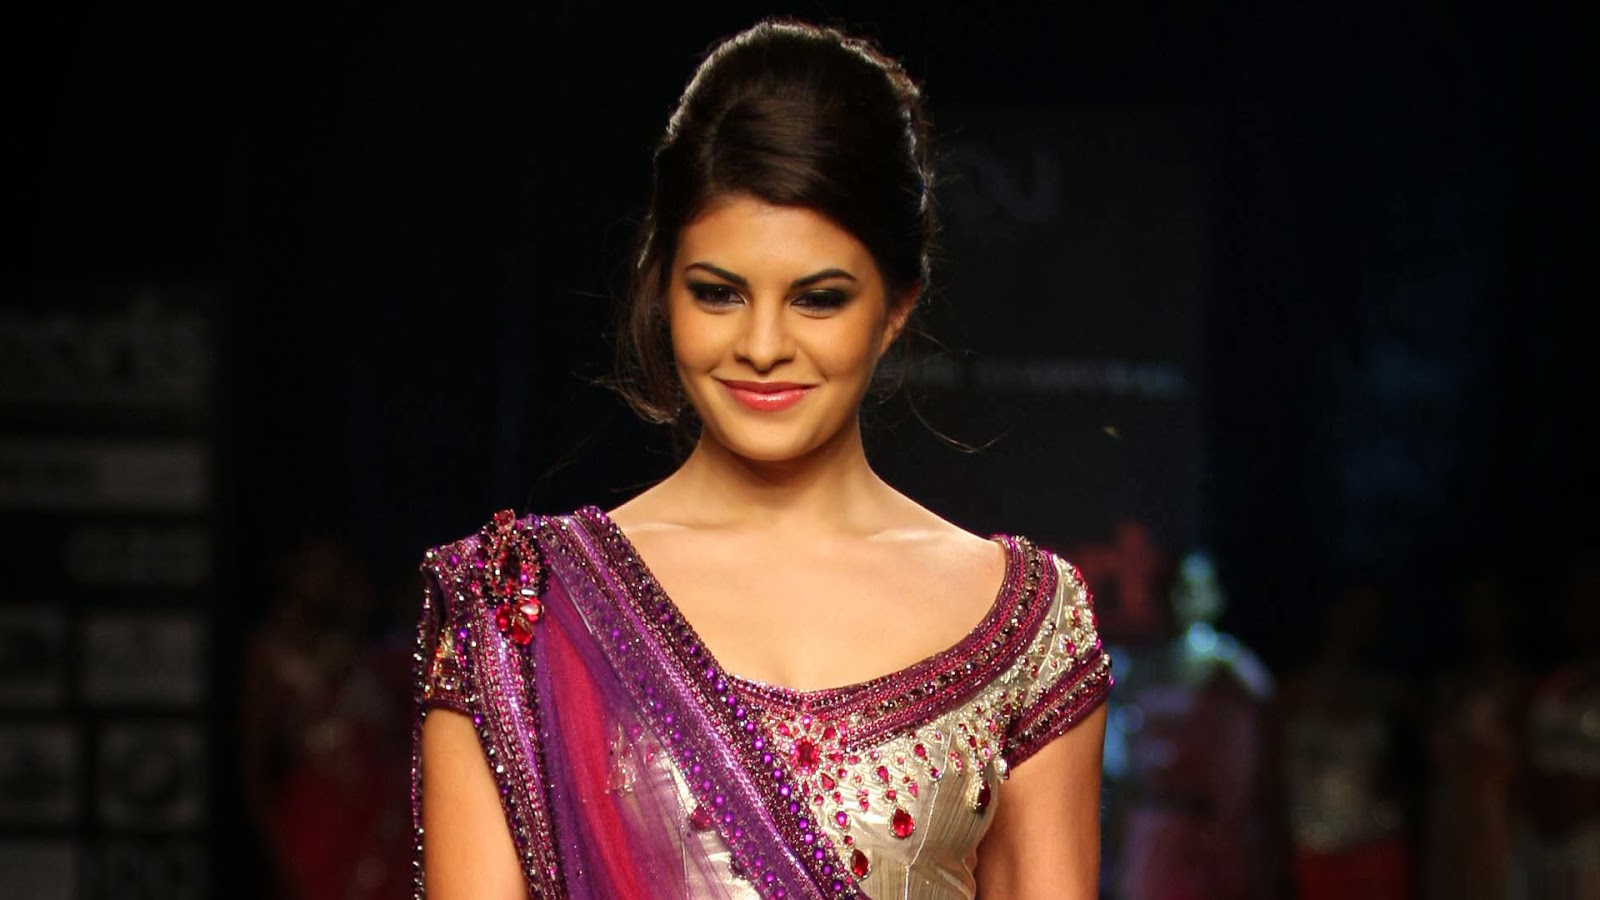 JACQUELINE FERNANDEZ_WALLSTOWN_IN_BOLLYWOOD ACTRESS